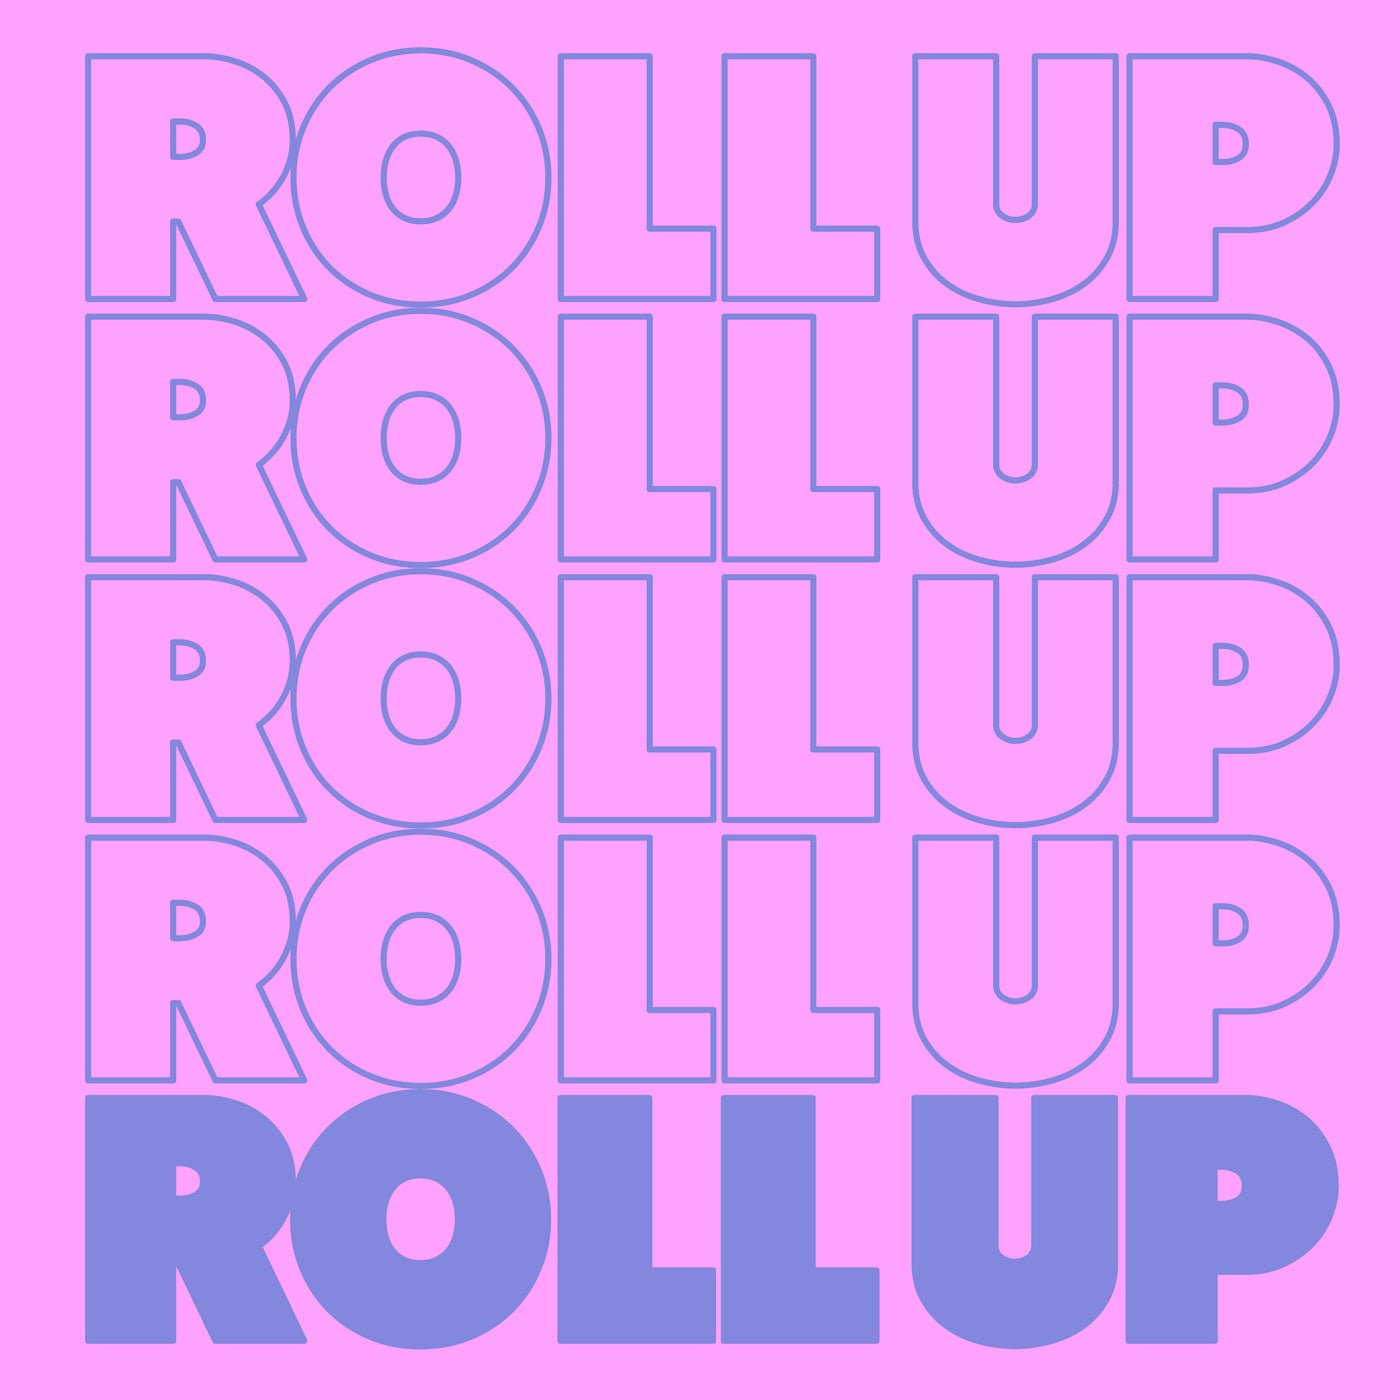 Download Roll Up - Mallin Remix on Electrobuzz